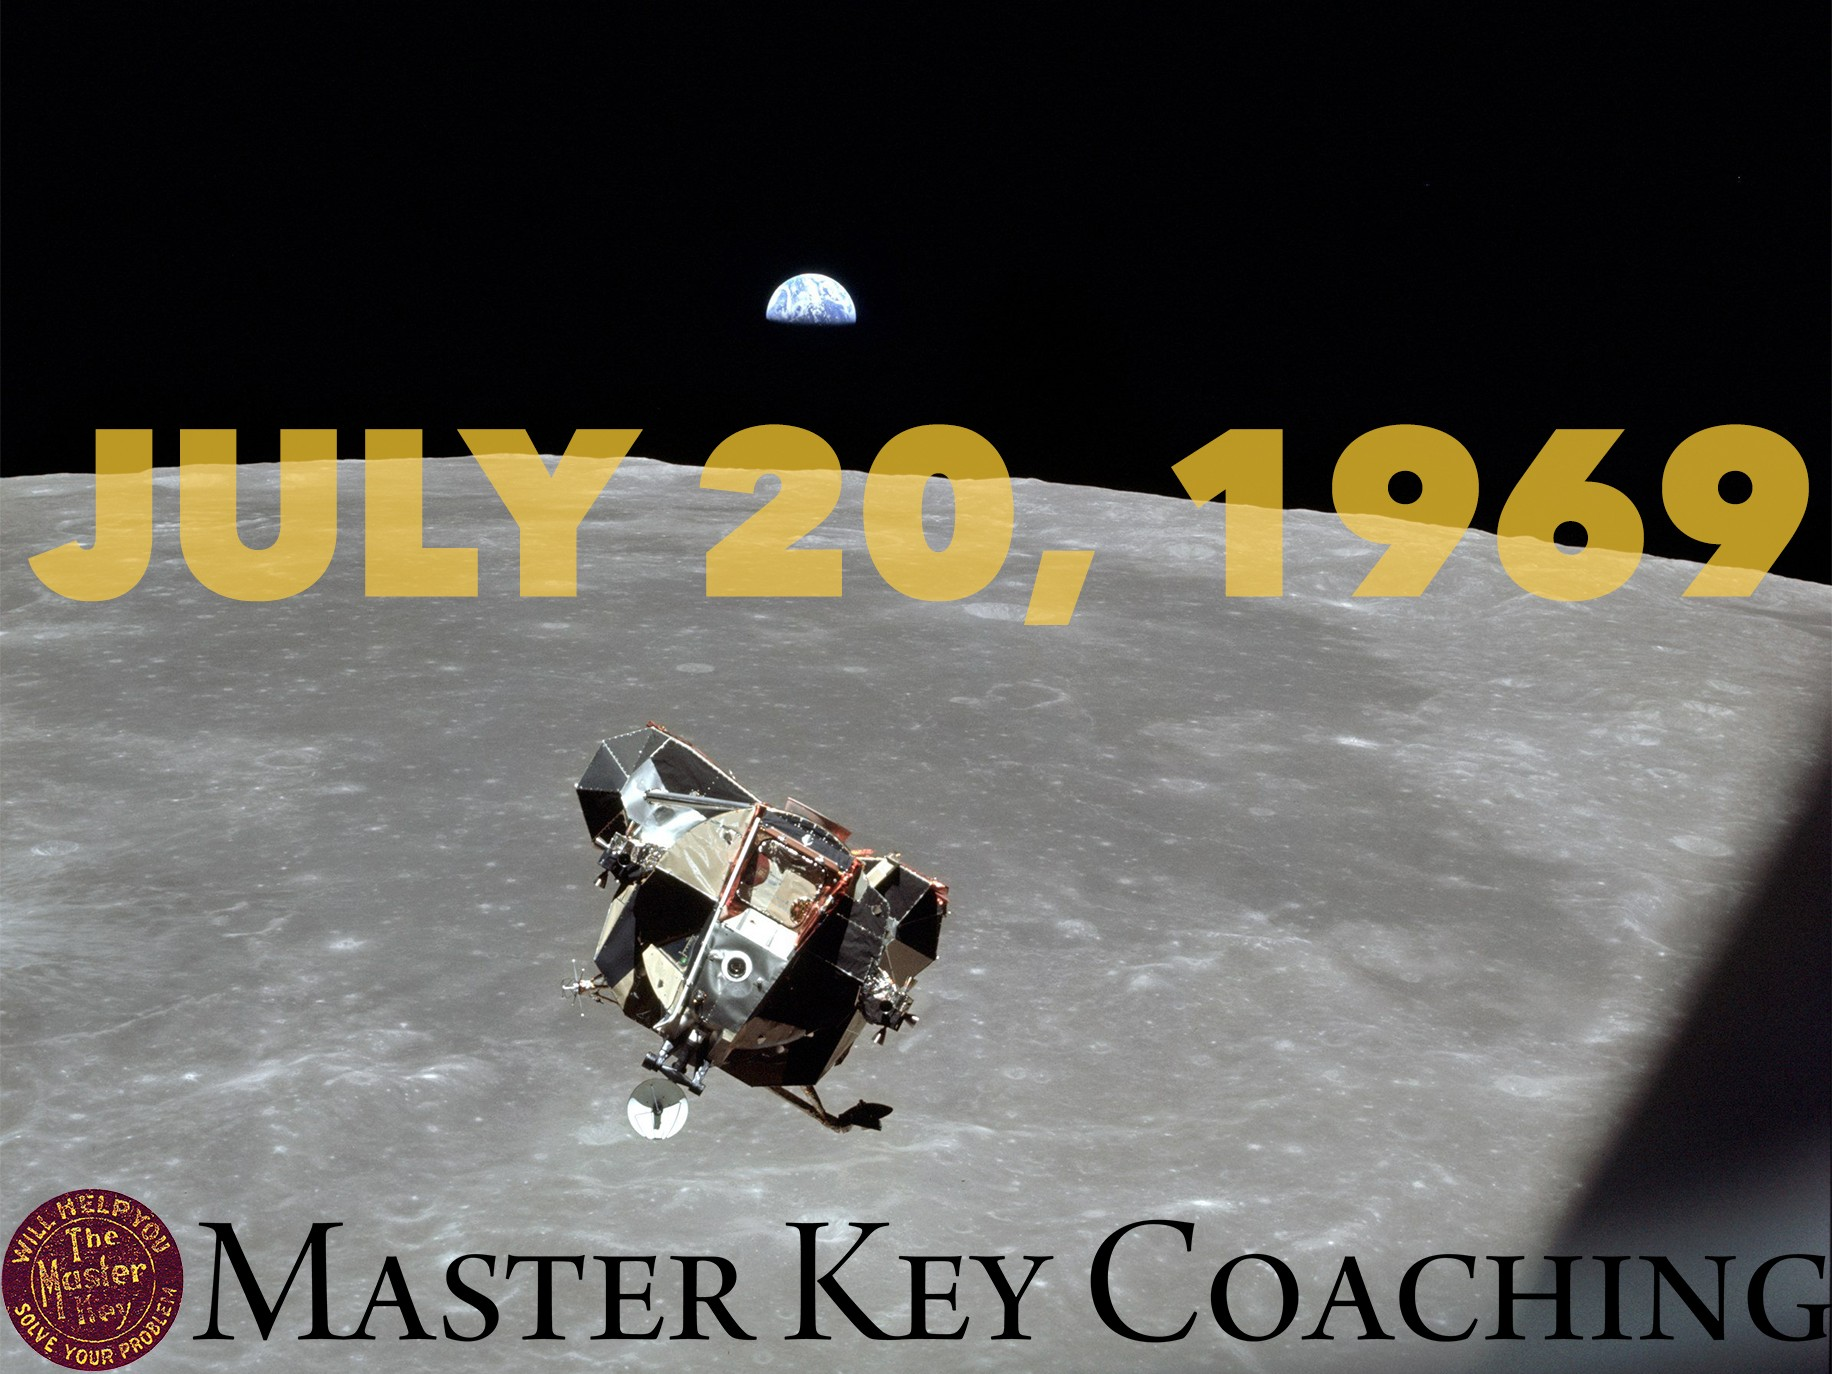 July 20, 1969: The Eagle Has Landed (masterkeycoaching.com)